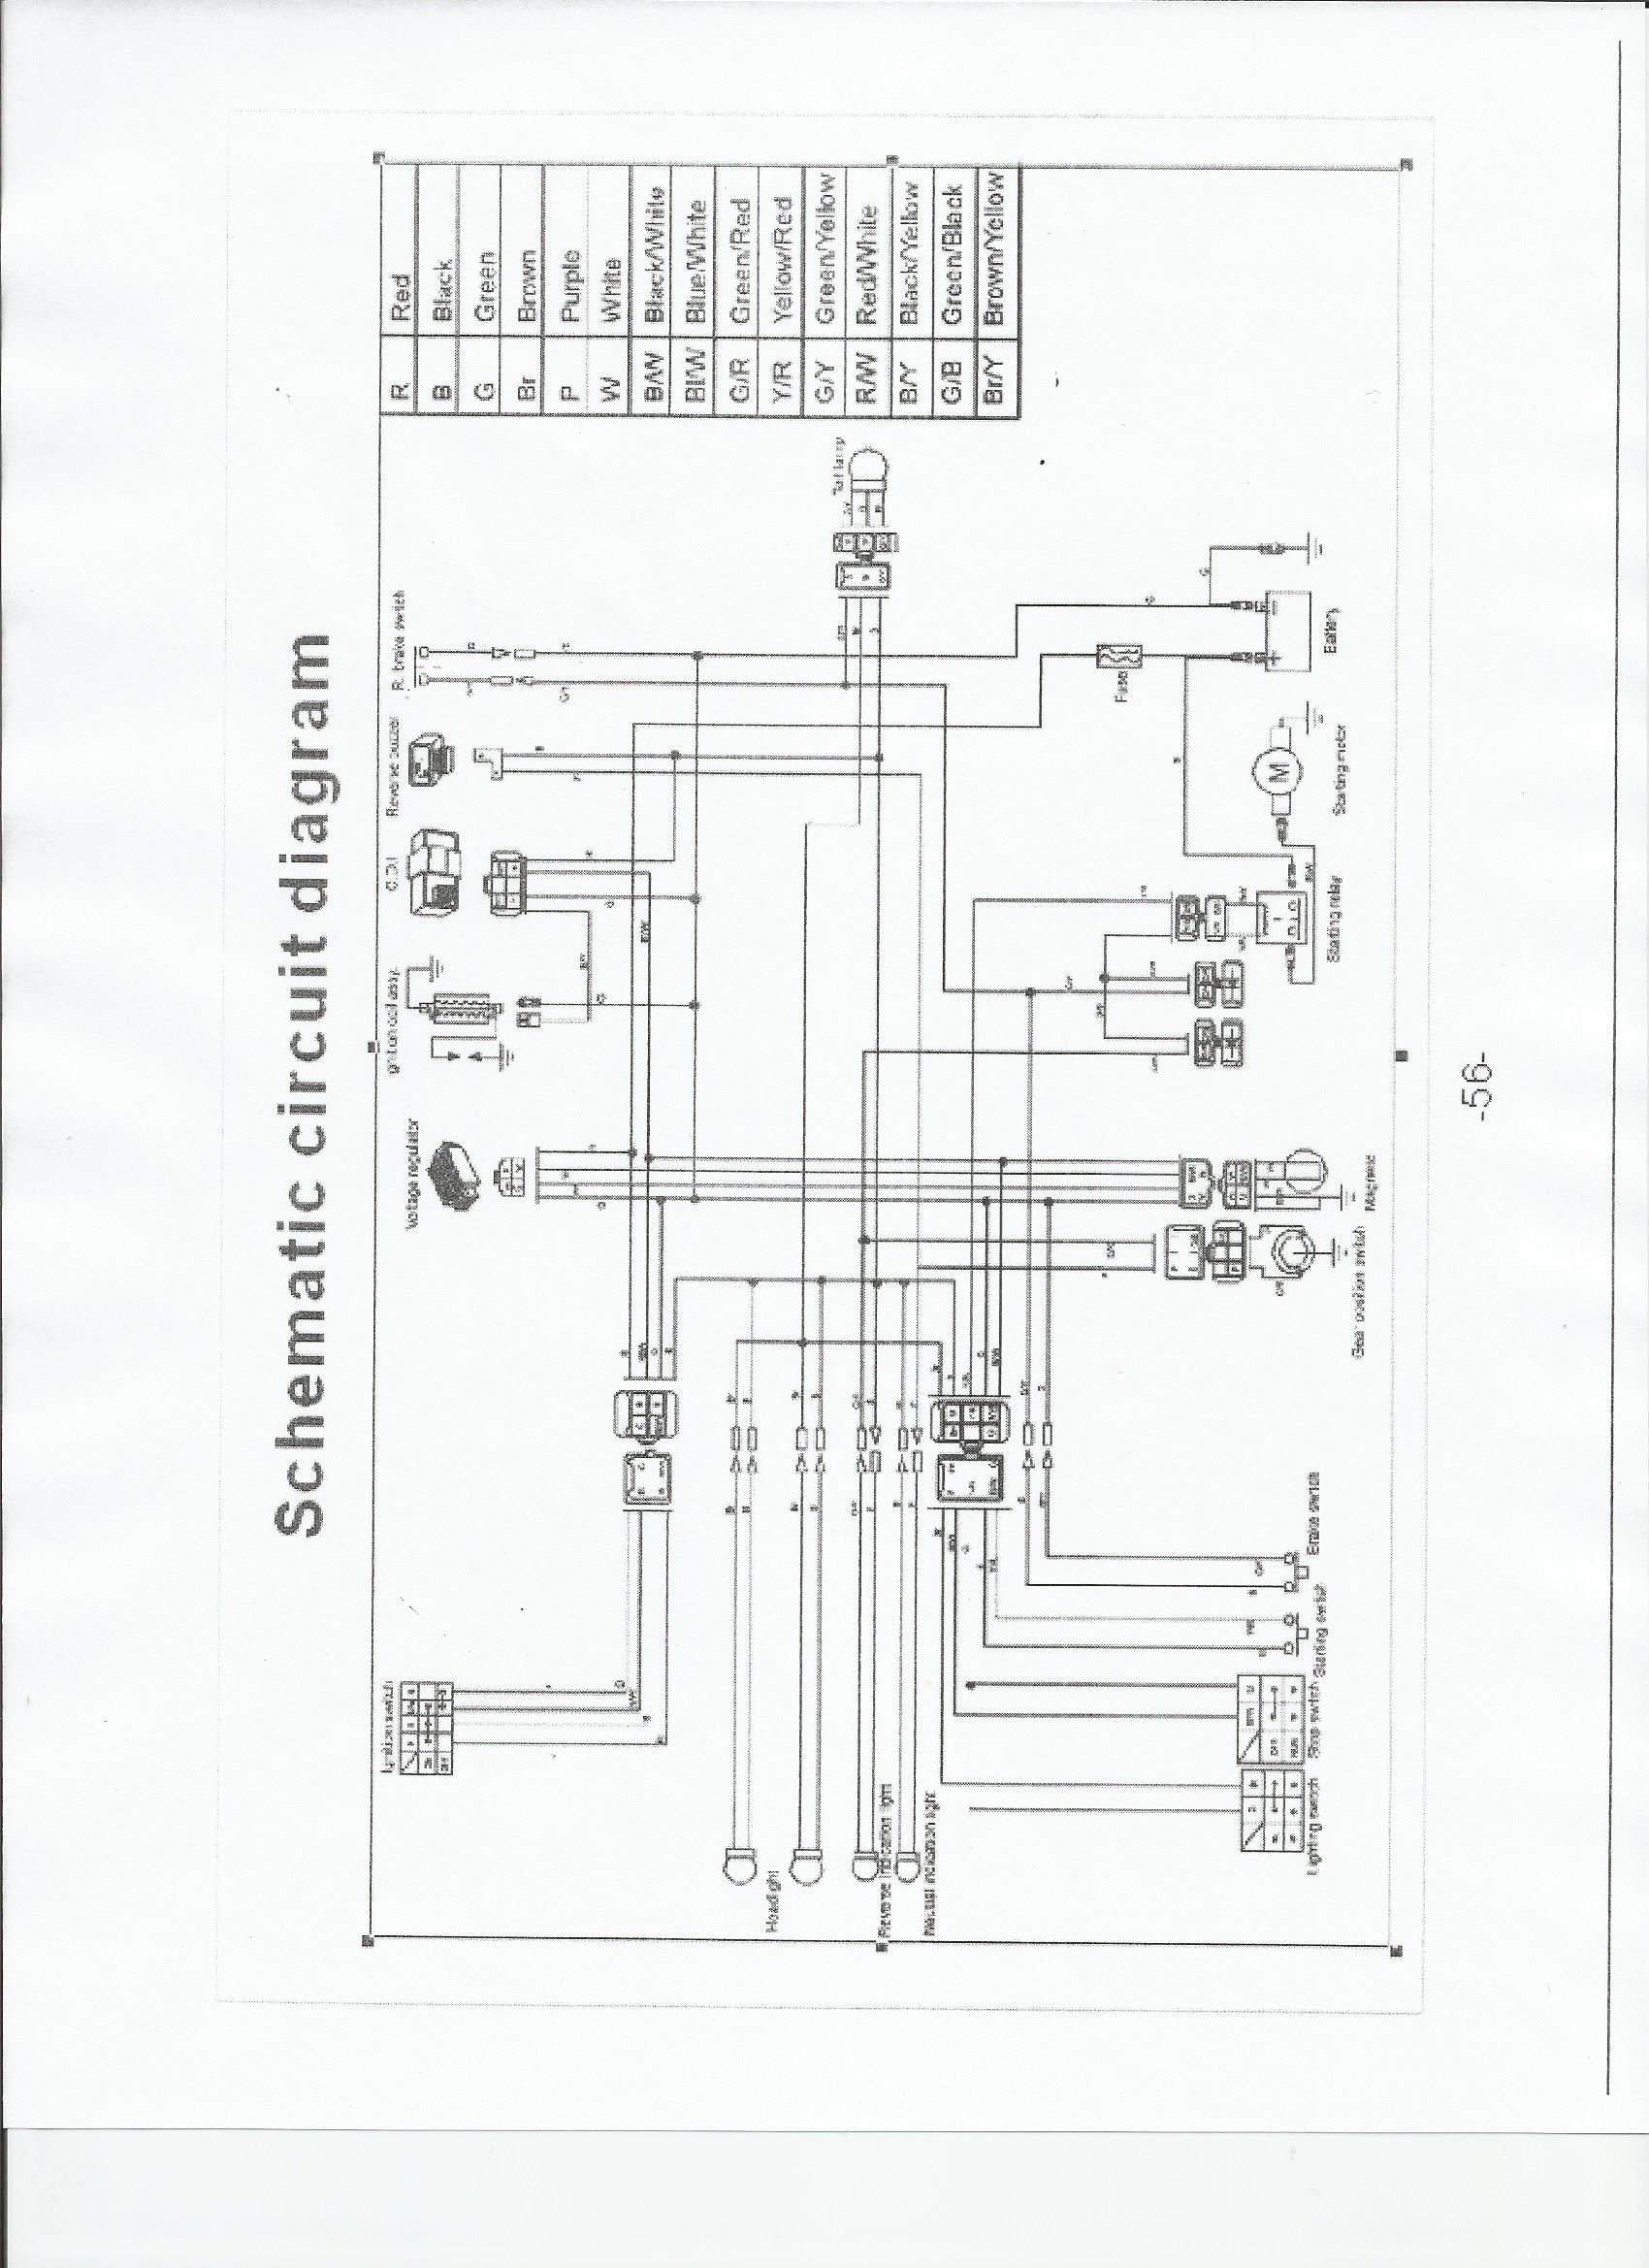 tao tao wiring schematic taotao mini and youth atv wiring schematic familygokarts support chinese atv alarm wiring diagram at bayanpartner.co